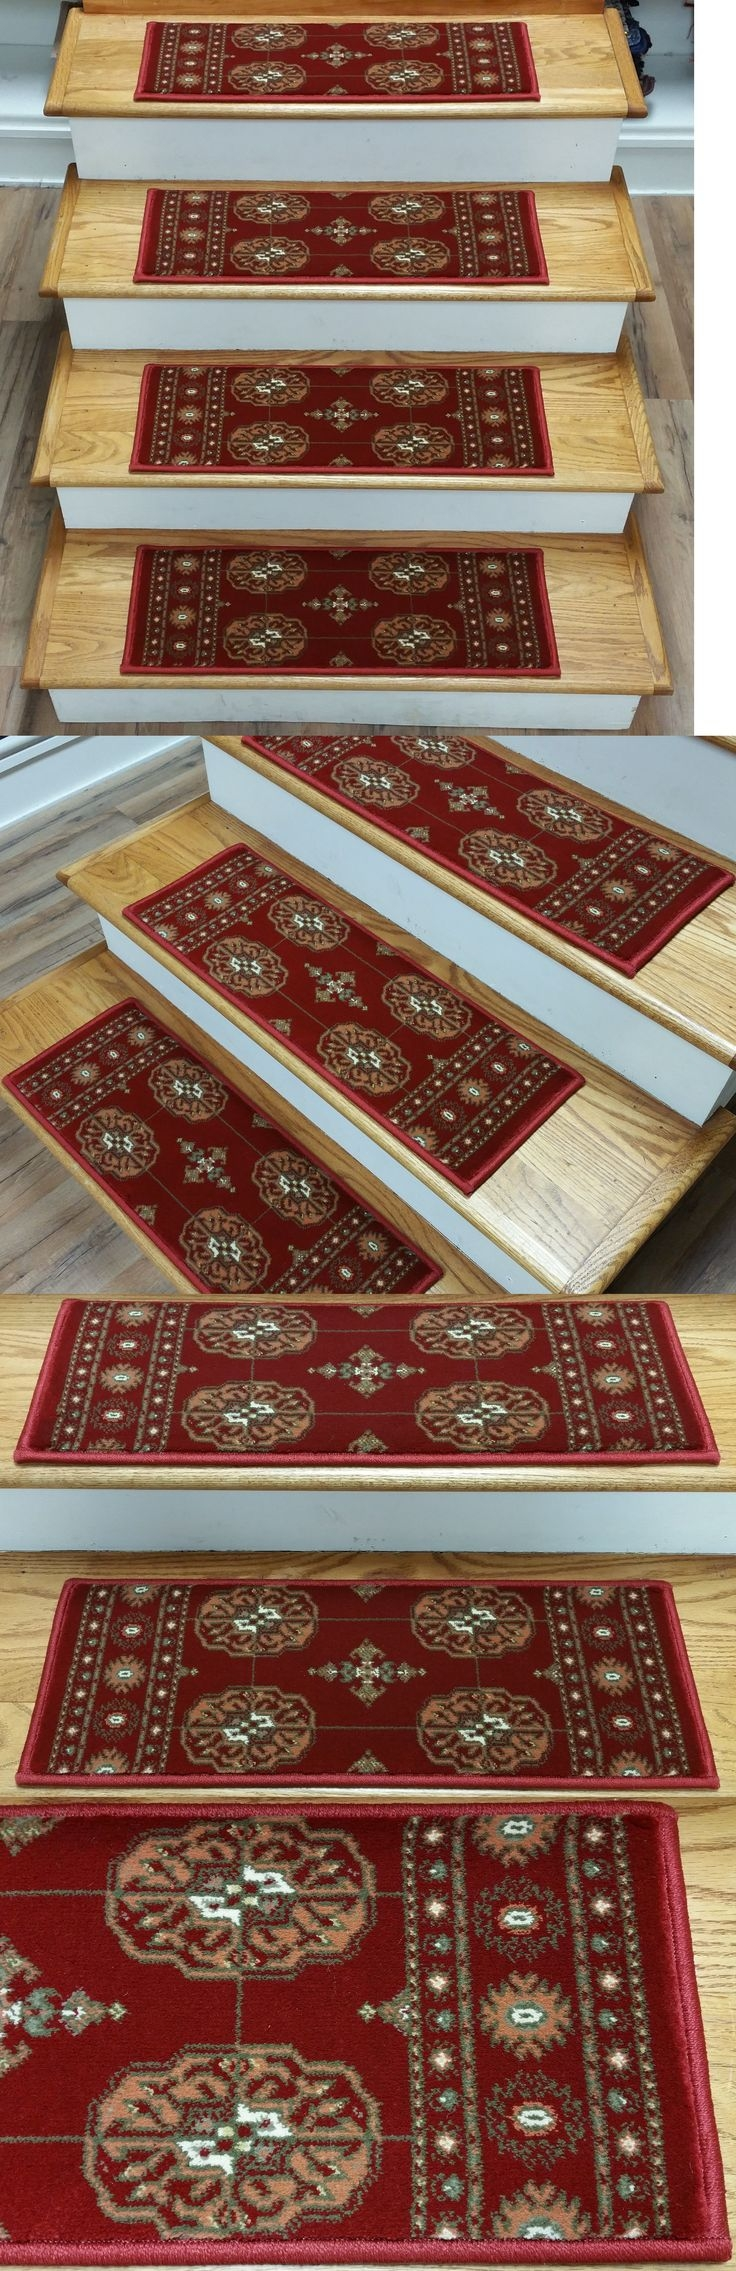 Best 20 Stair Tread Rugs Ideas On Pinterest Carpet Stair Treads Pertaining To Colonial Mills Stair Tread Rugs (#4 of 20)